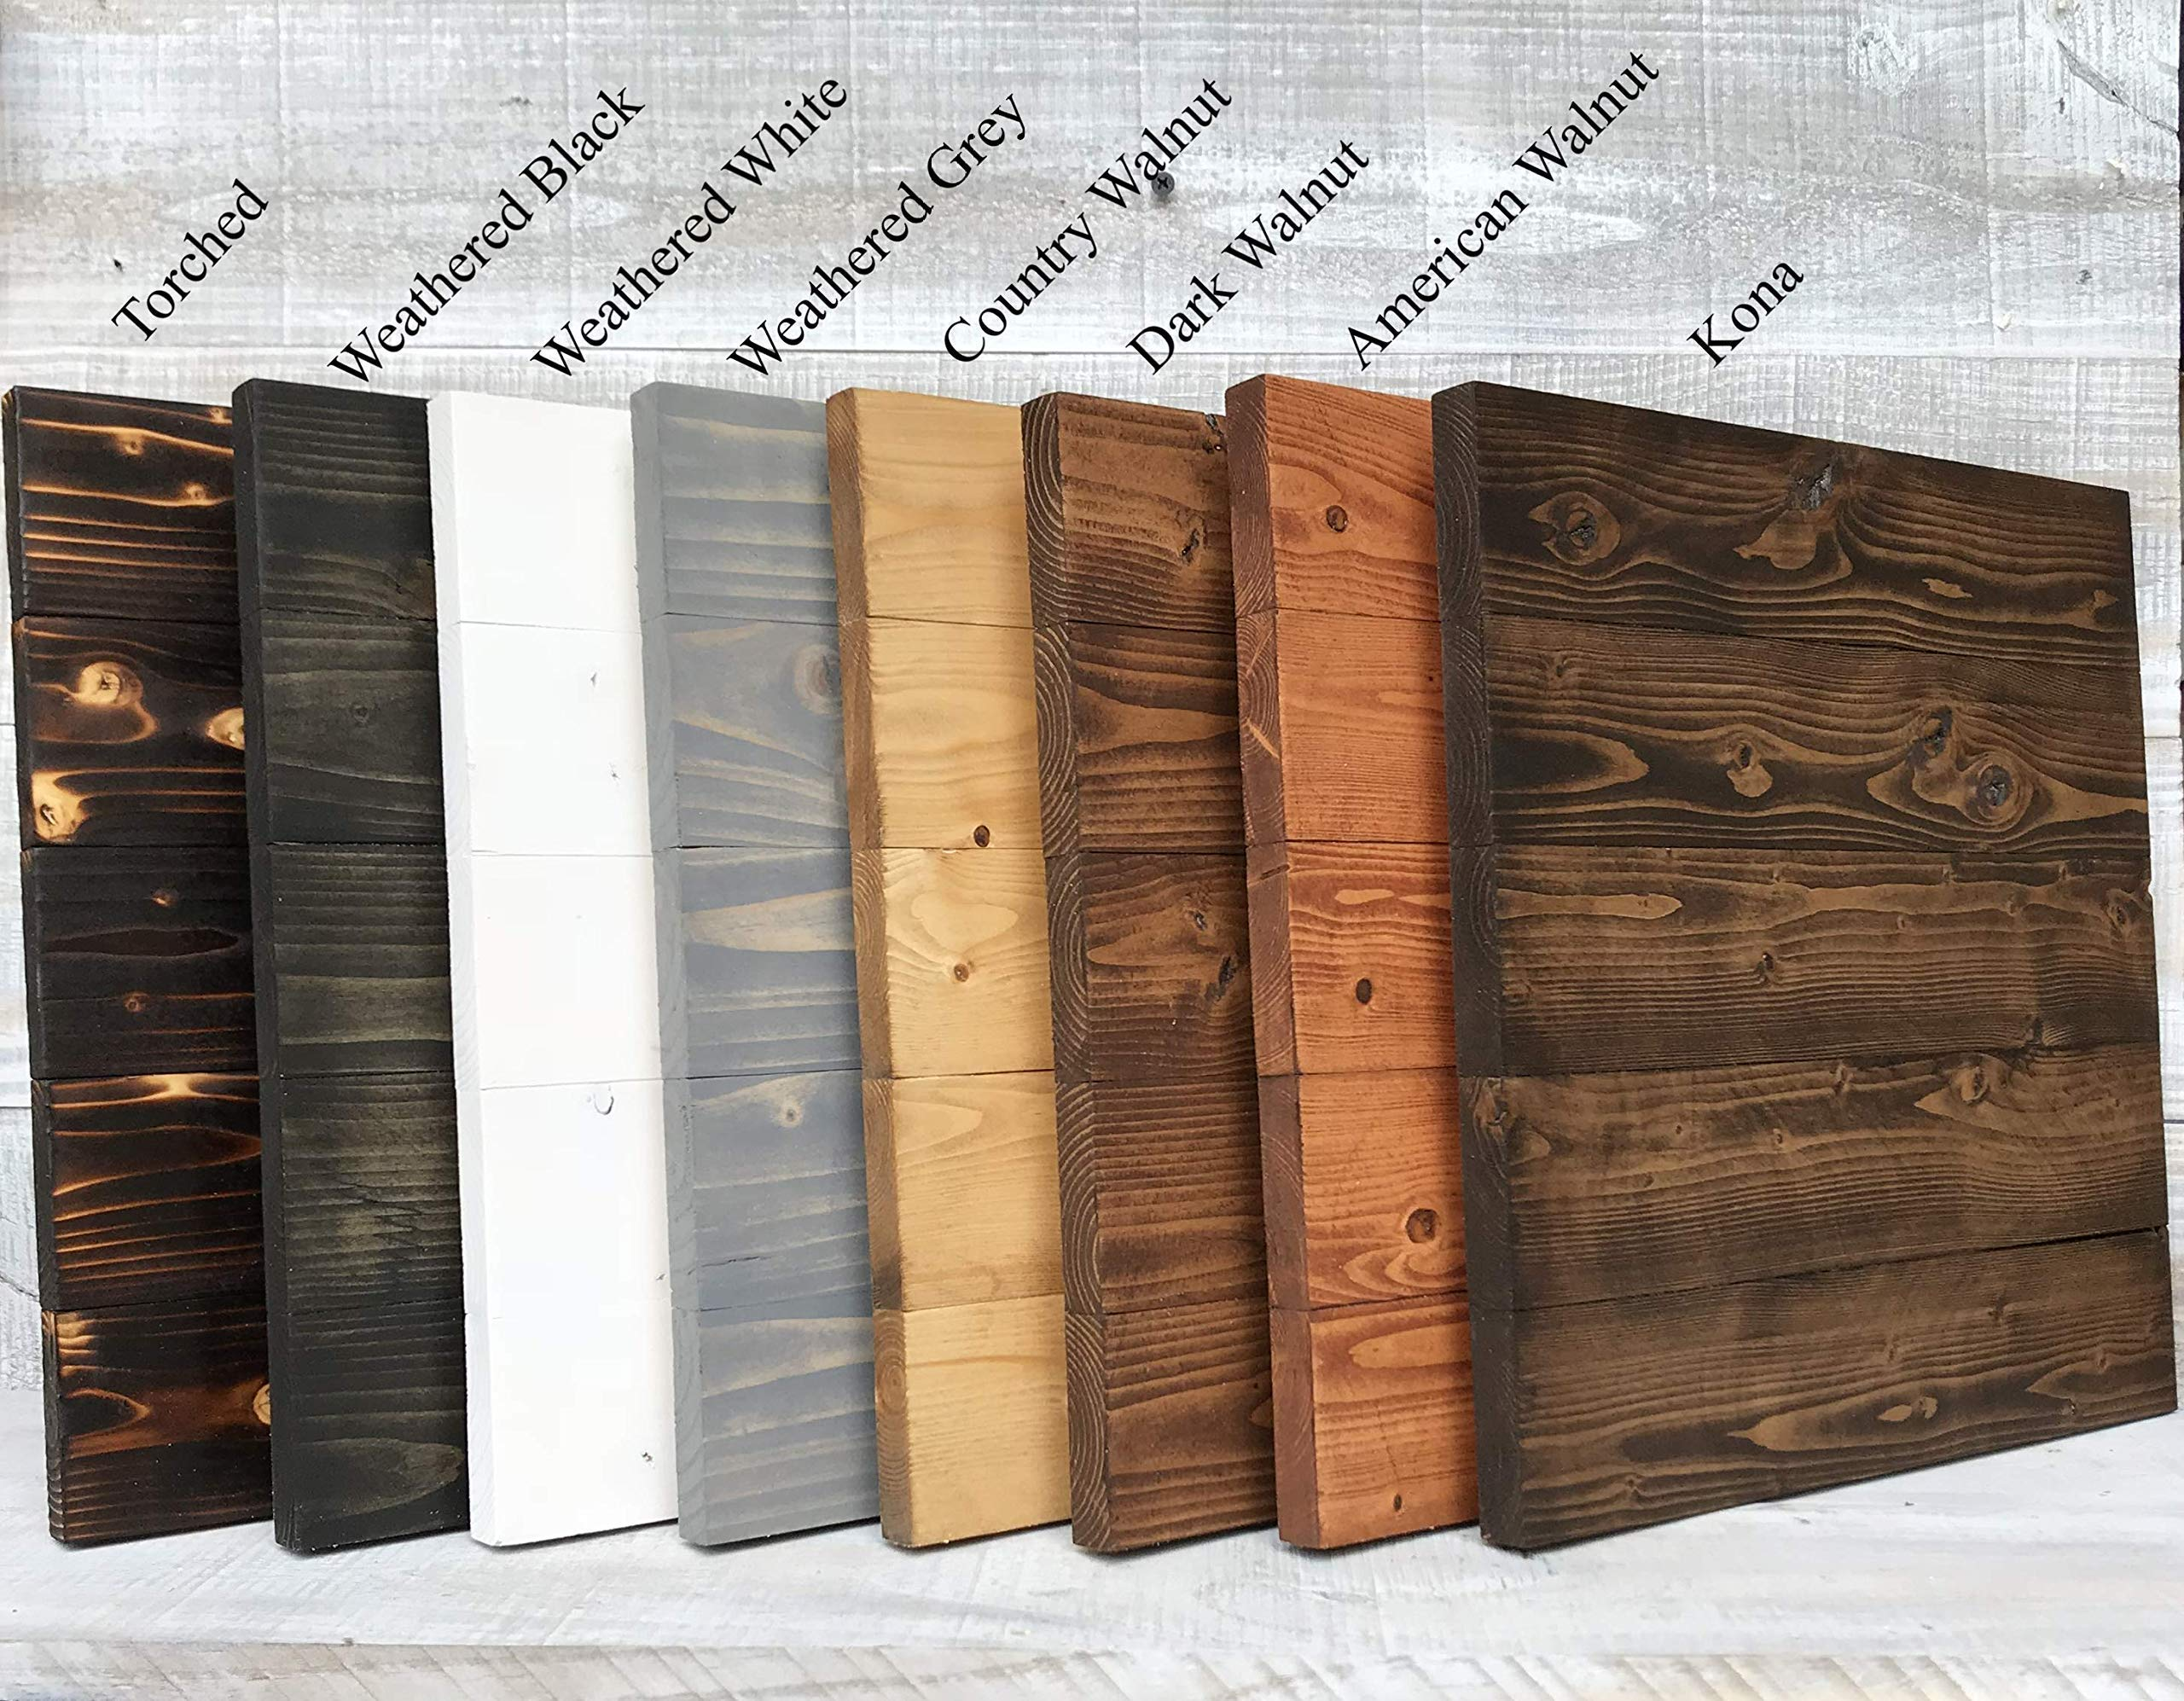 Rustic Pallet Wood Canvas   Wood Sign Blank   Wedding Sign   100% Handmade in the USA with FSC-Certified Wood